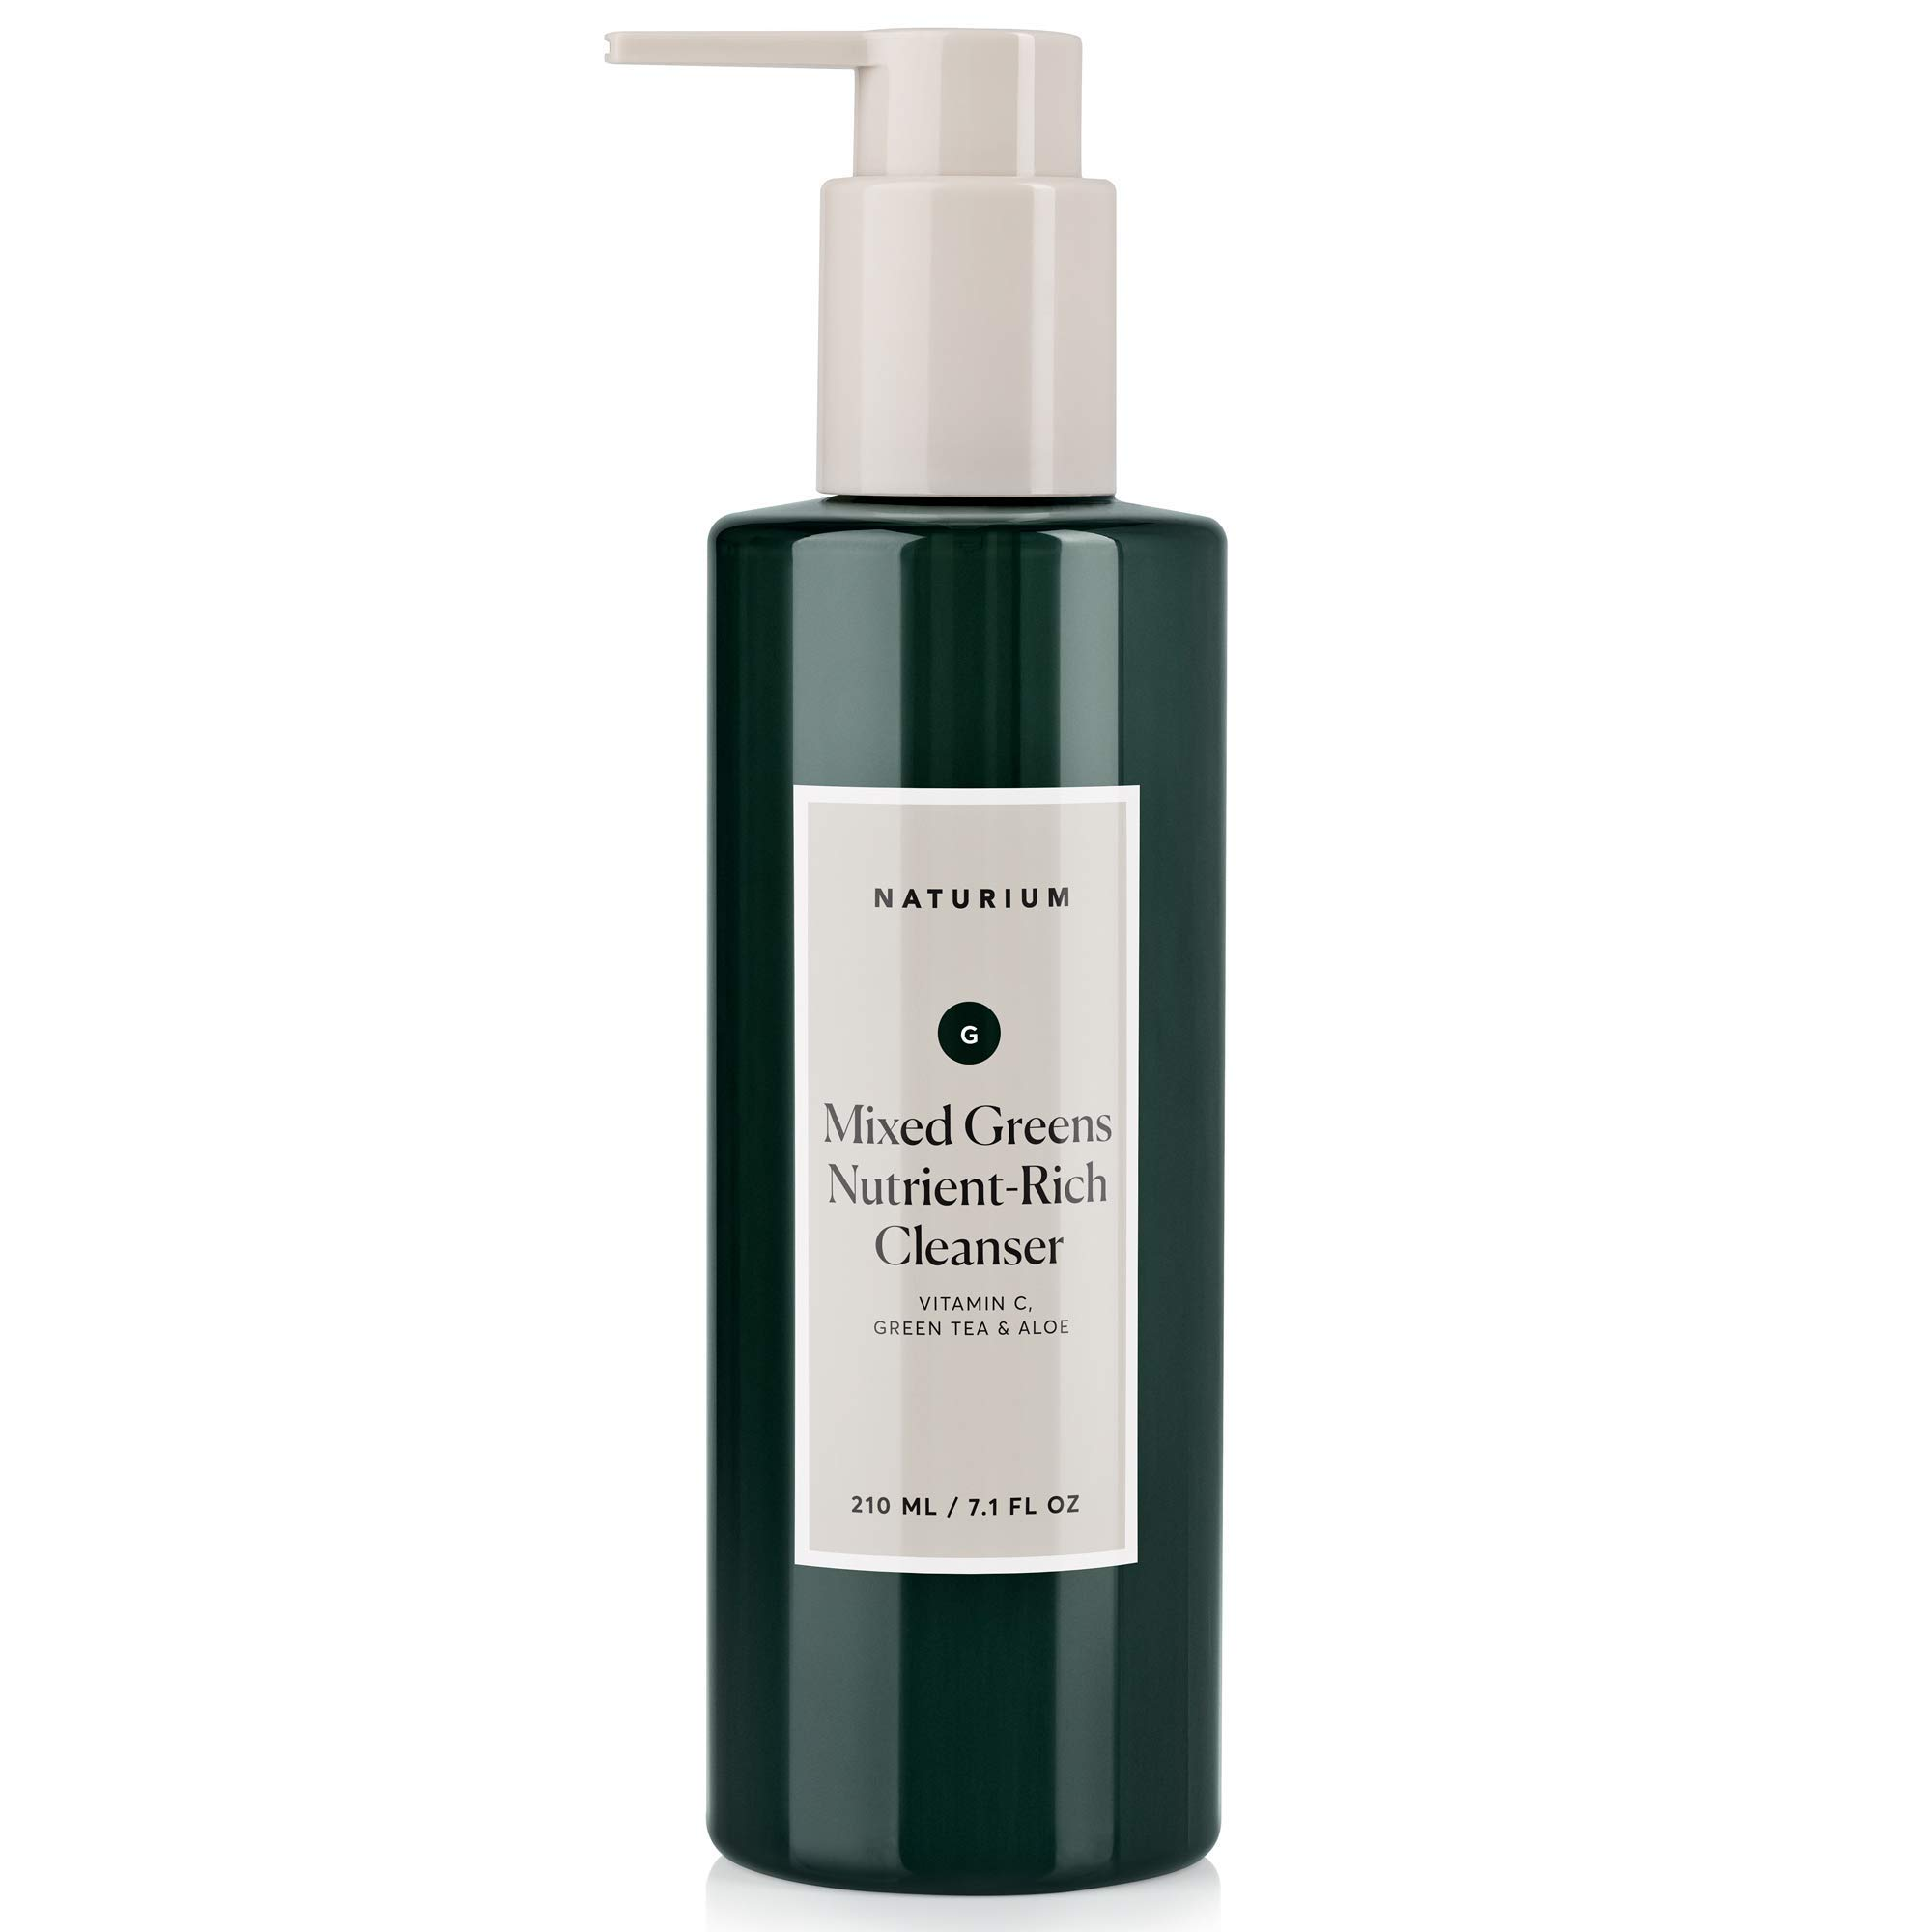 Mixed Greens Nutrient-Rich Facial Cleanser - 7.1 oz, Breakout & Blemish Prevention, Clear Pores, Anti-Wrinkle Gel Face Wash with Vitamin C, Green Tea & Aloe by Naturium